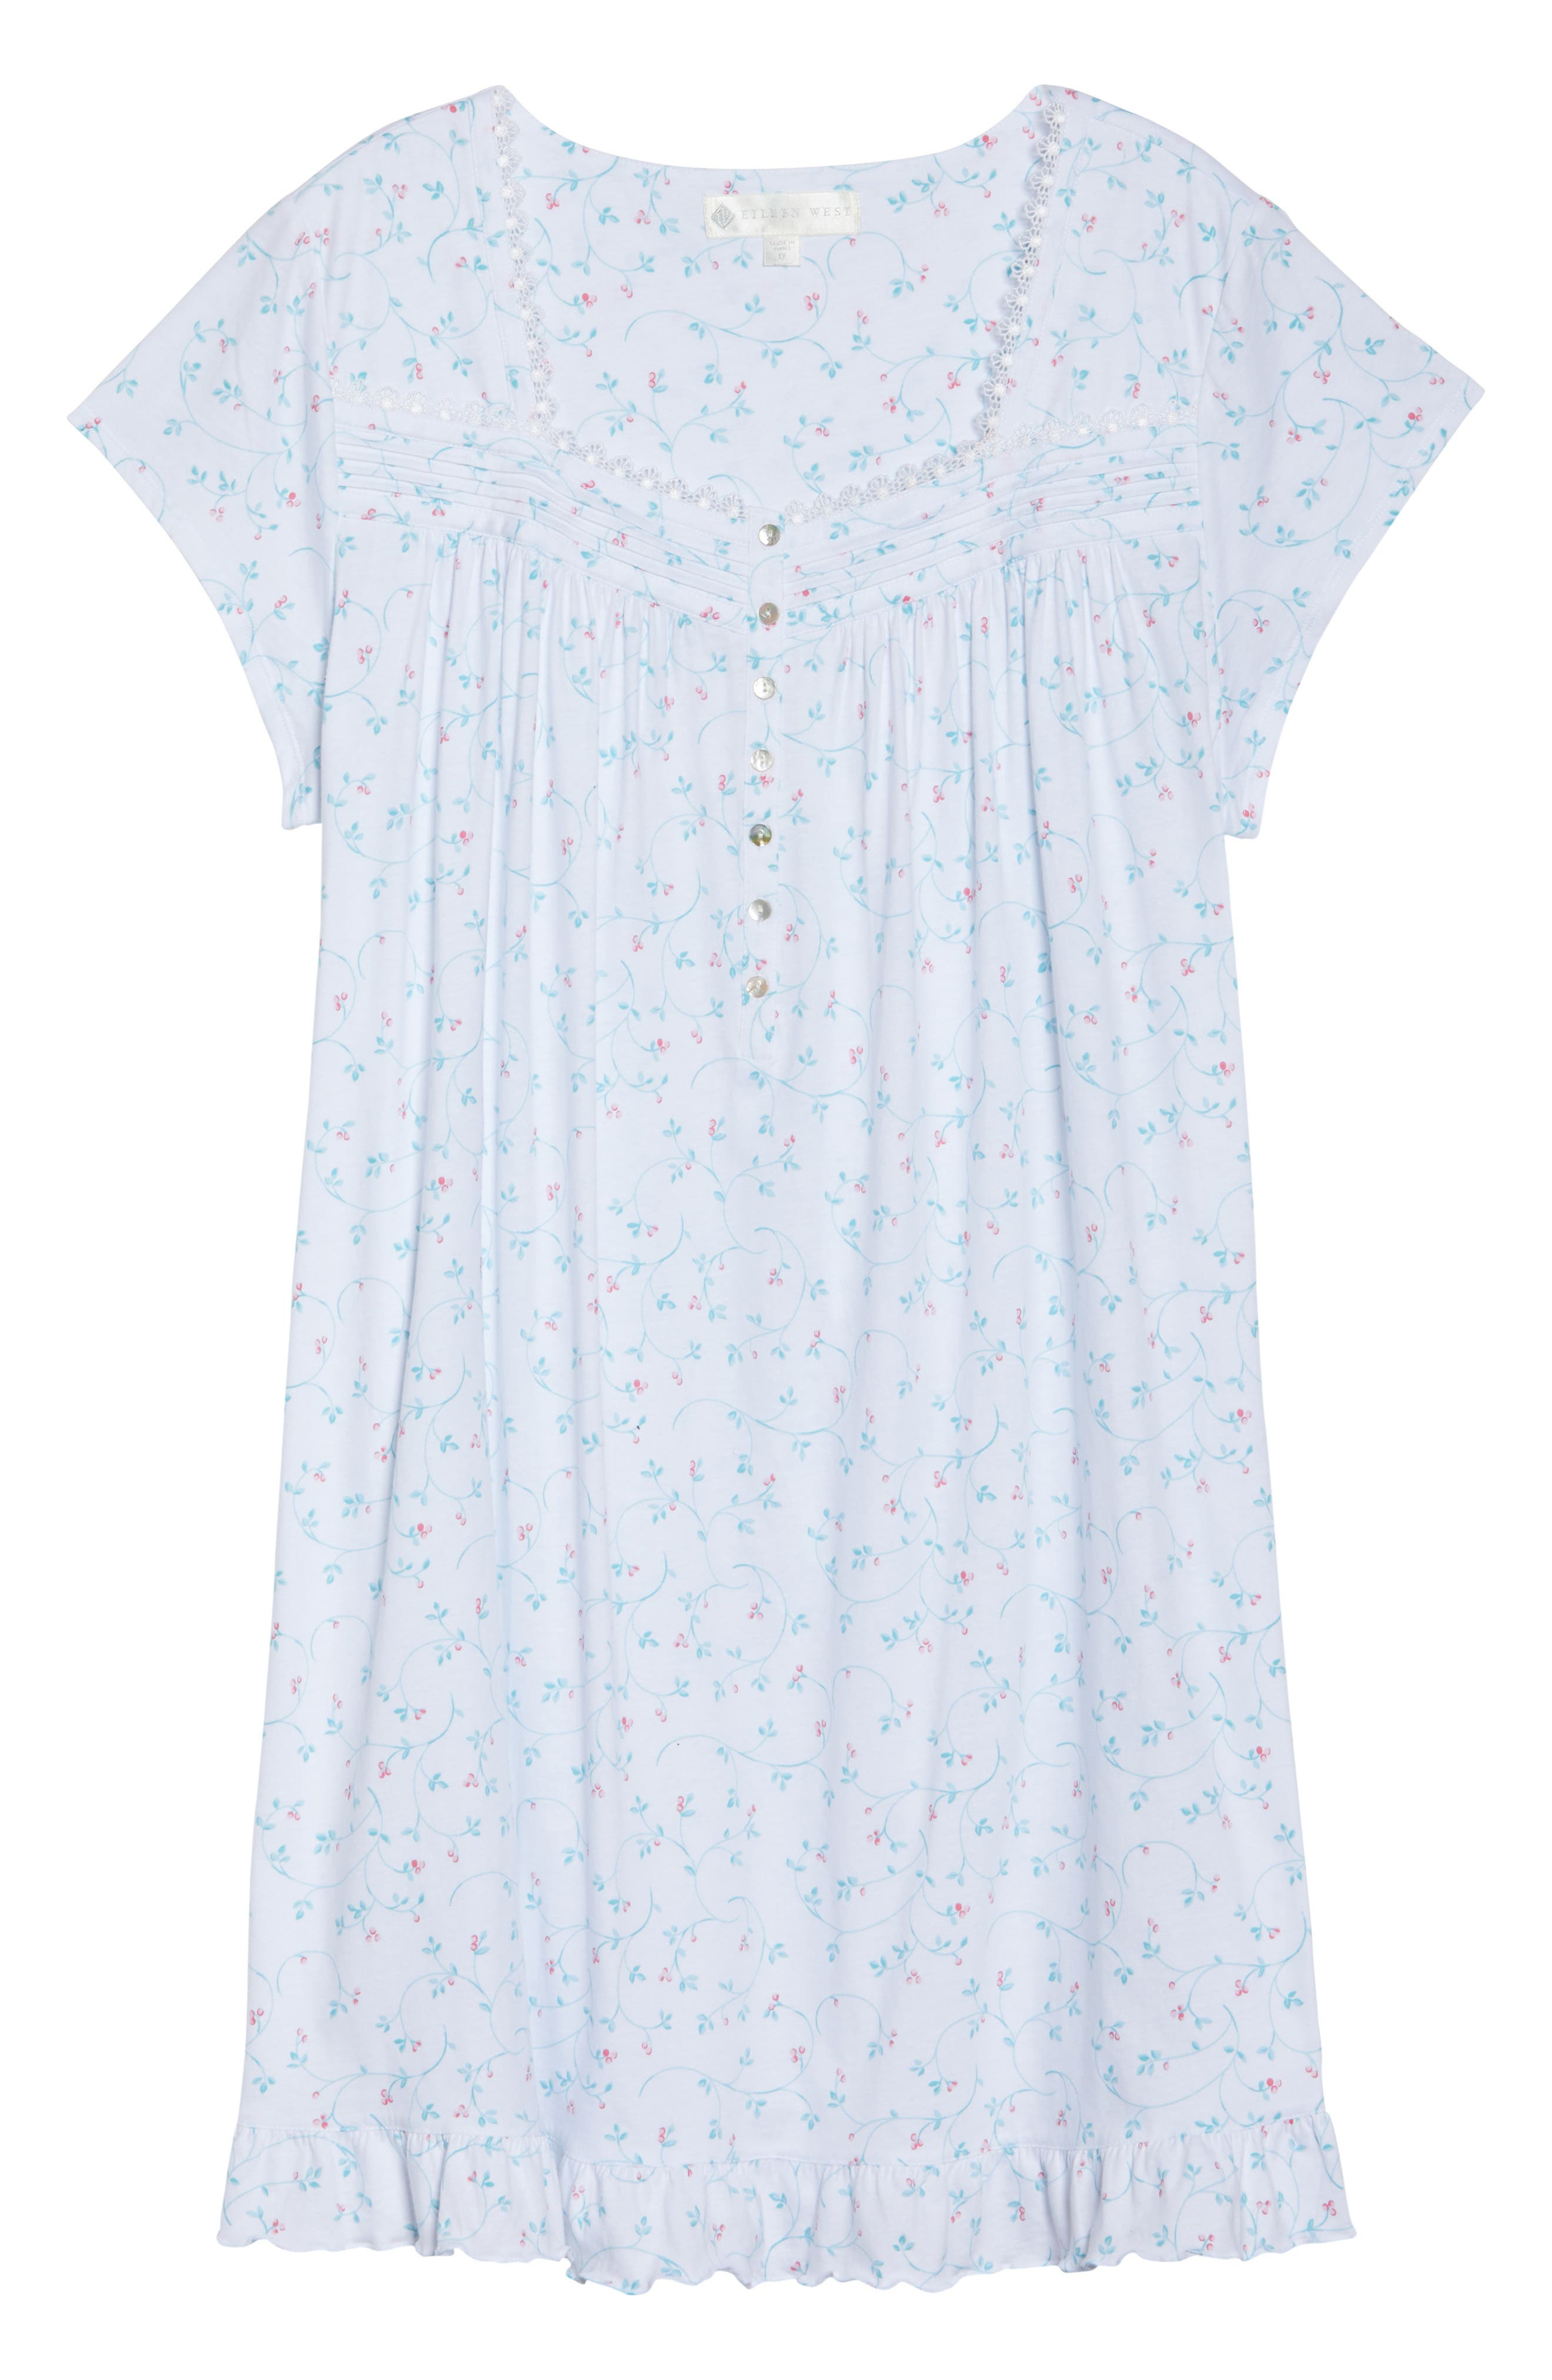 Cotton Jersey Short Nightgown,                             Alternate thumbnail 6, color,                             100